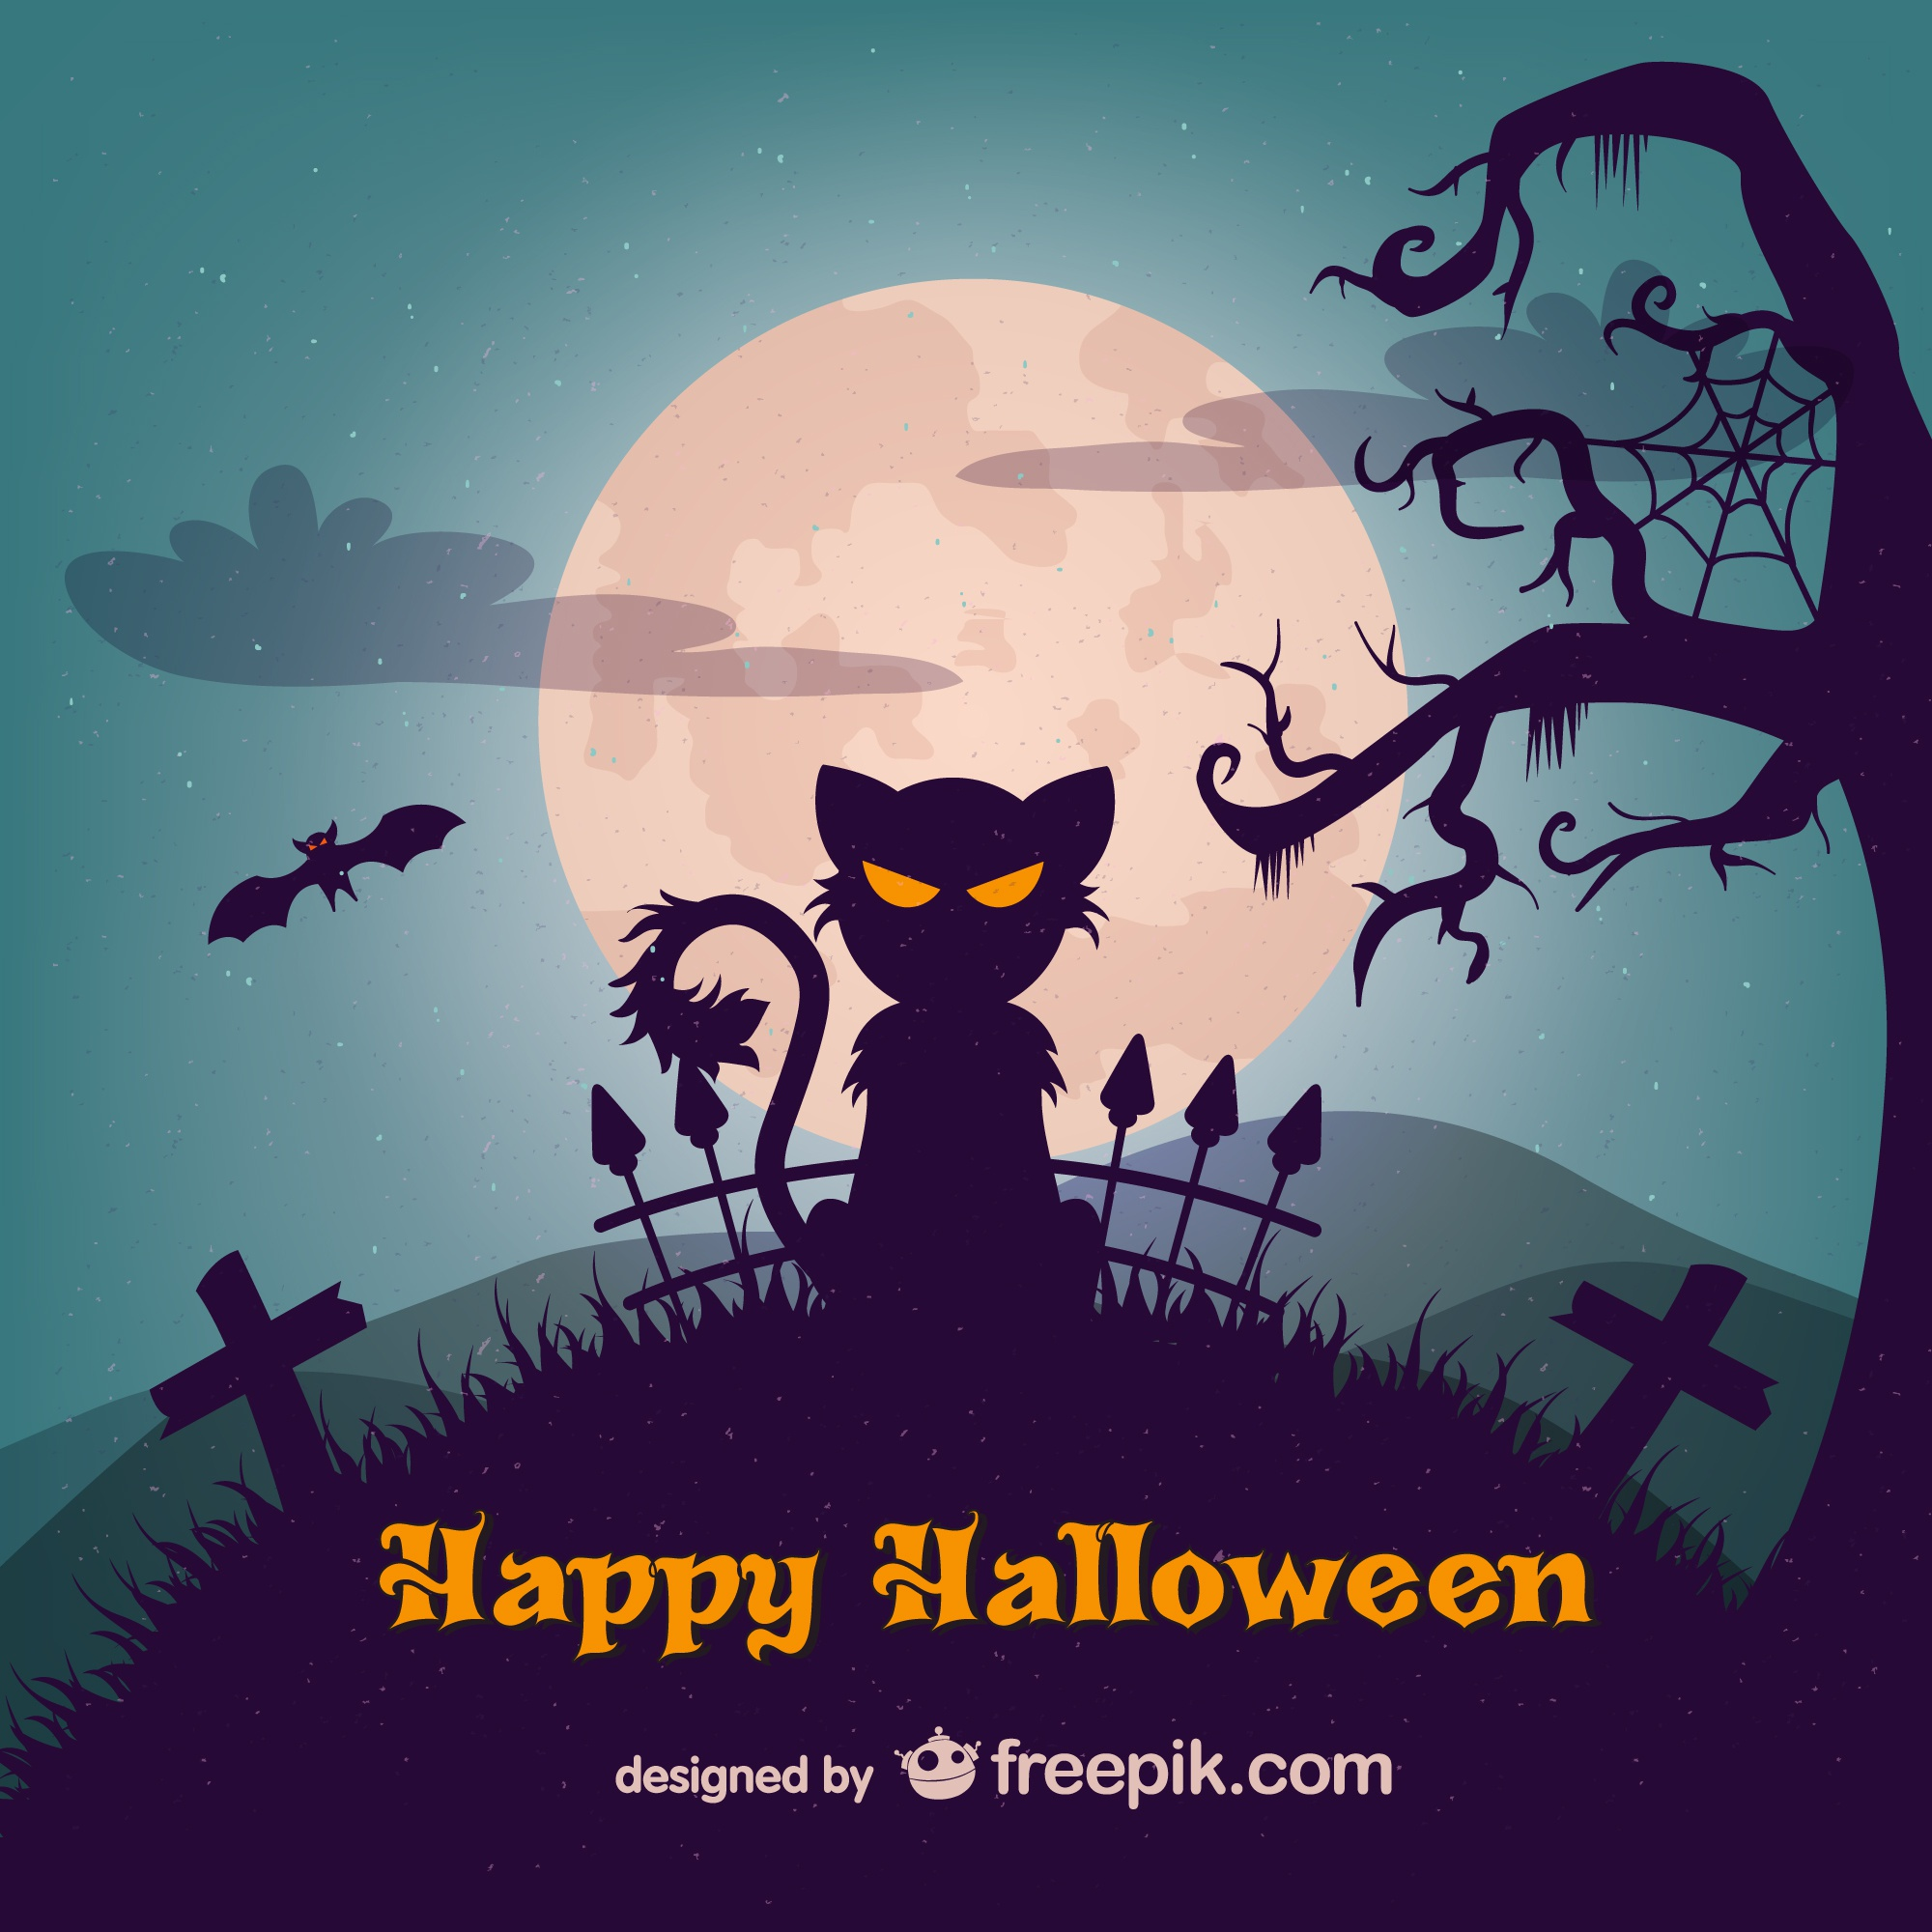 Evil cat halloween illustration template